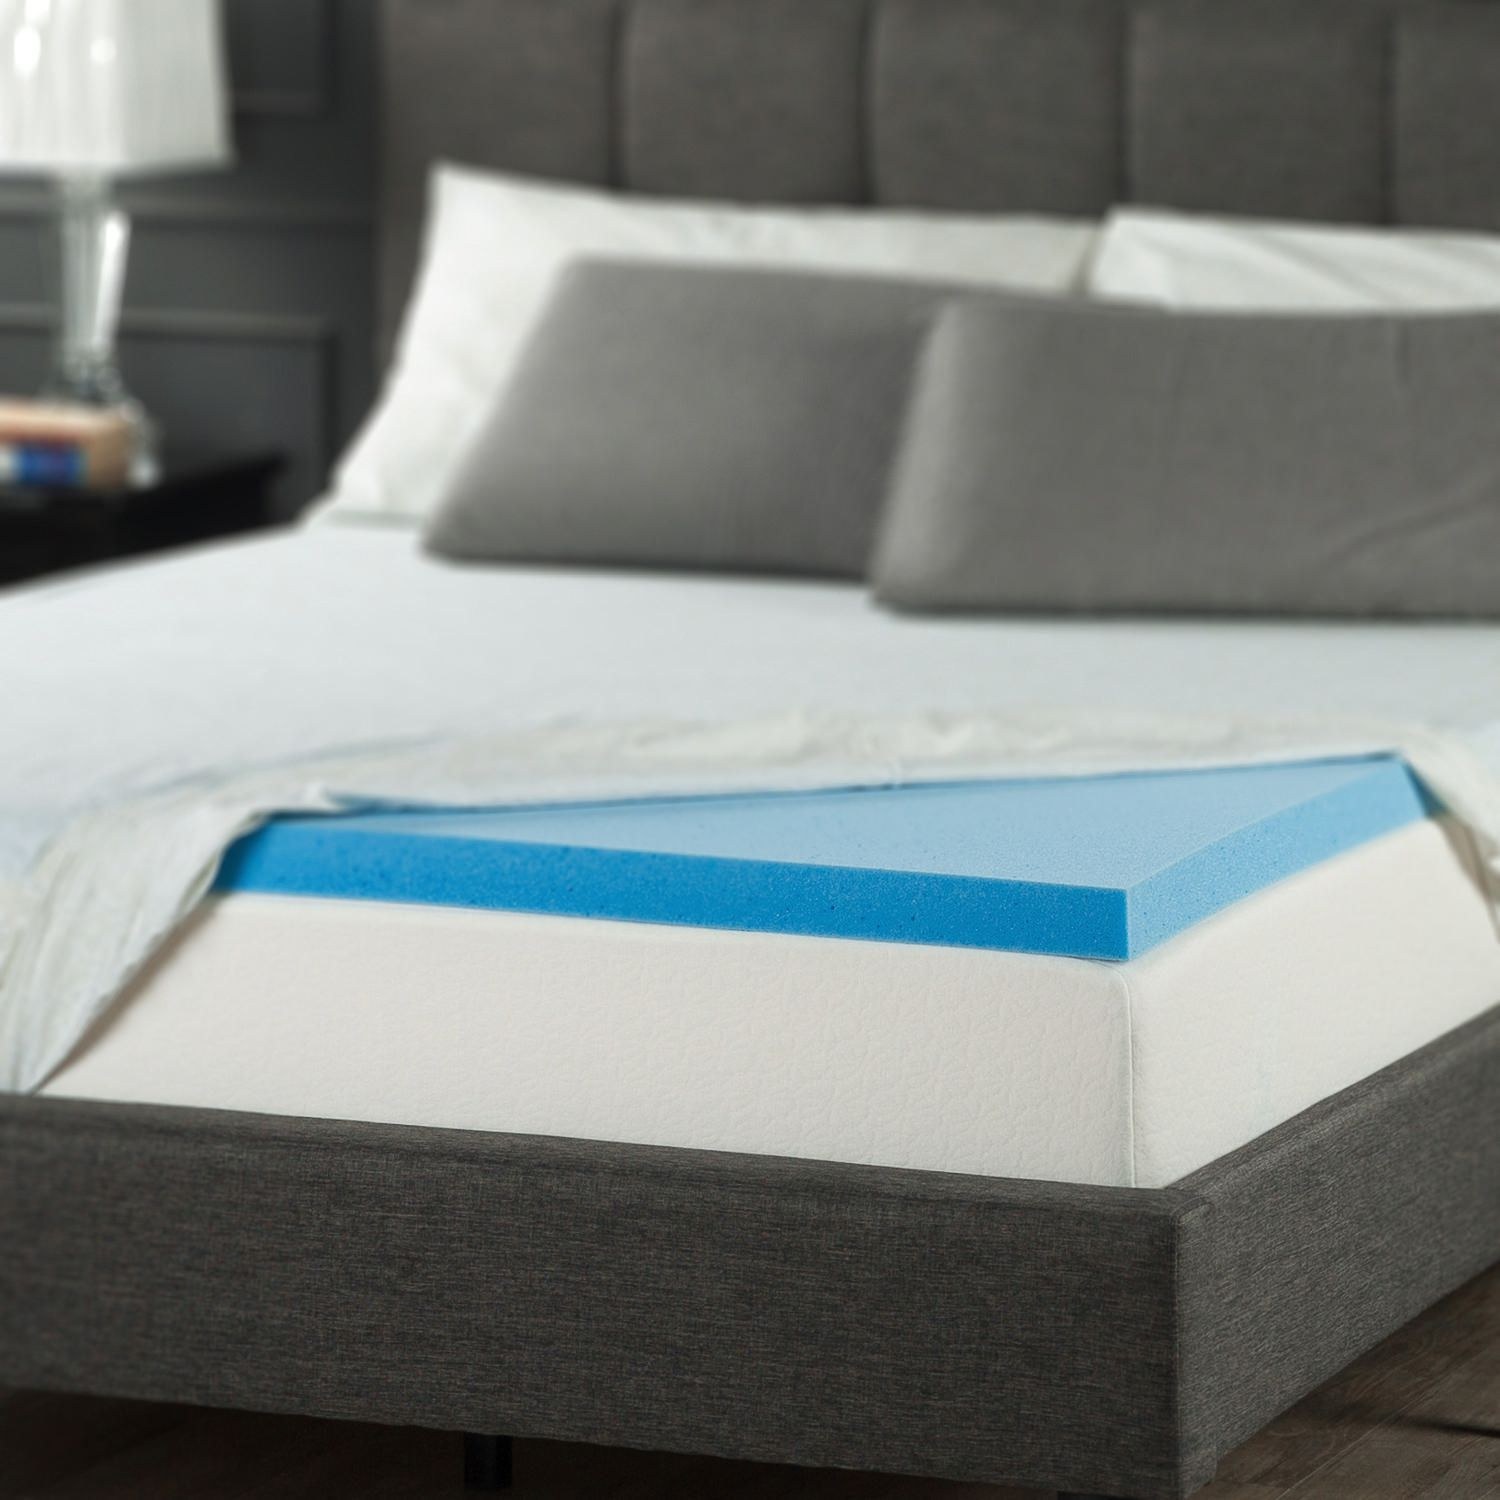 Mattress Toppers Covers & Protectors for Home Bedding at Walmart